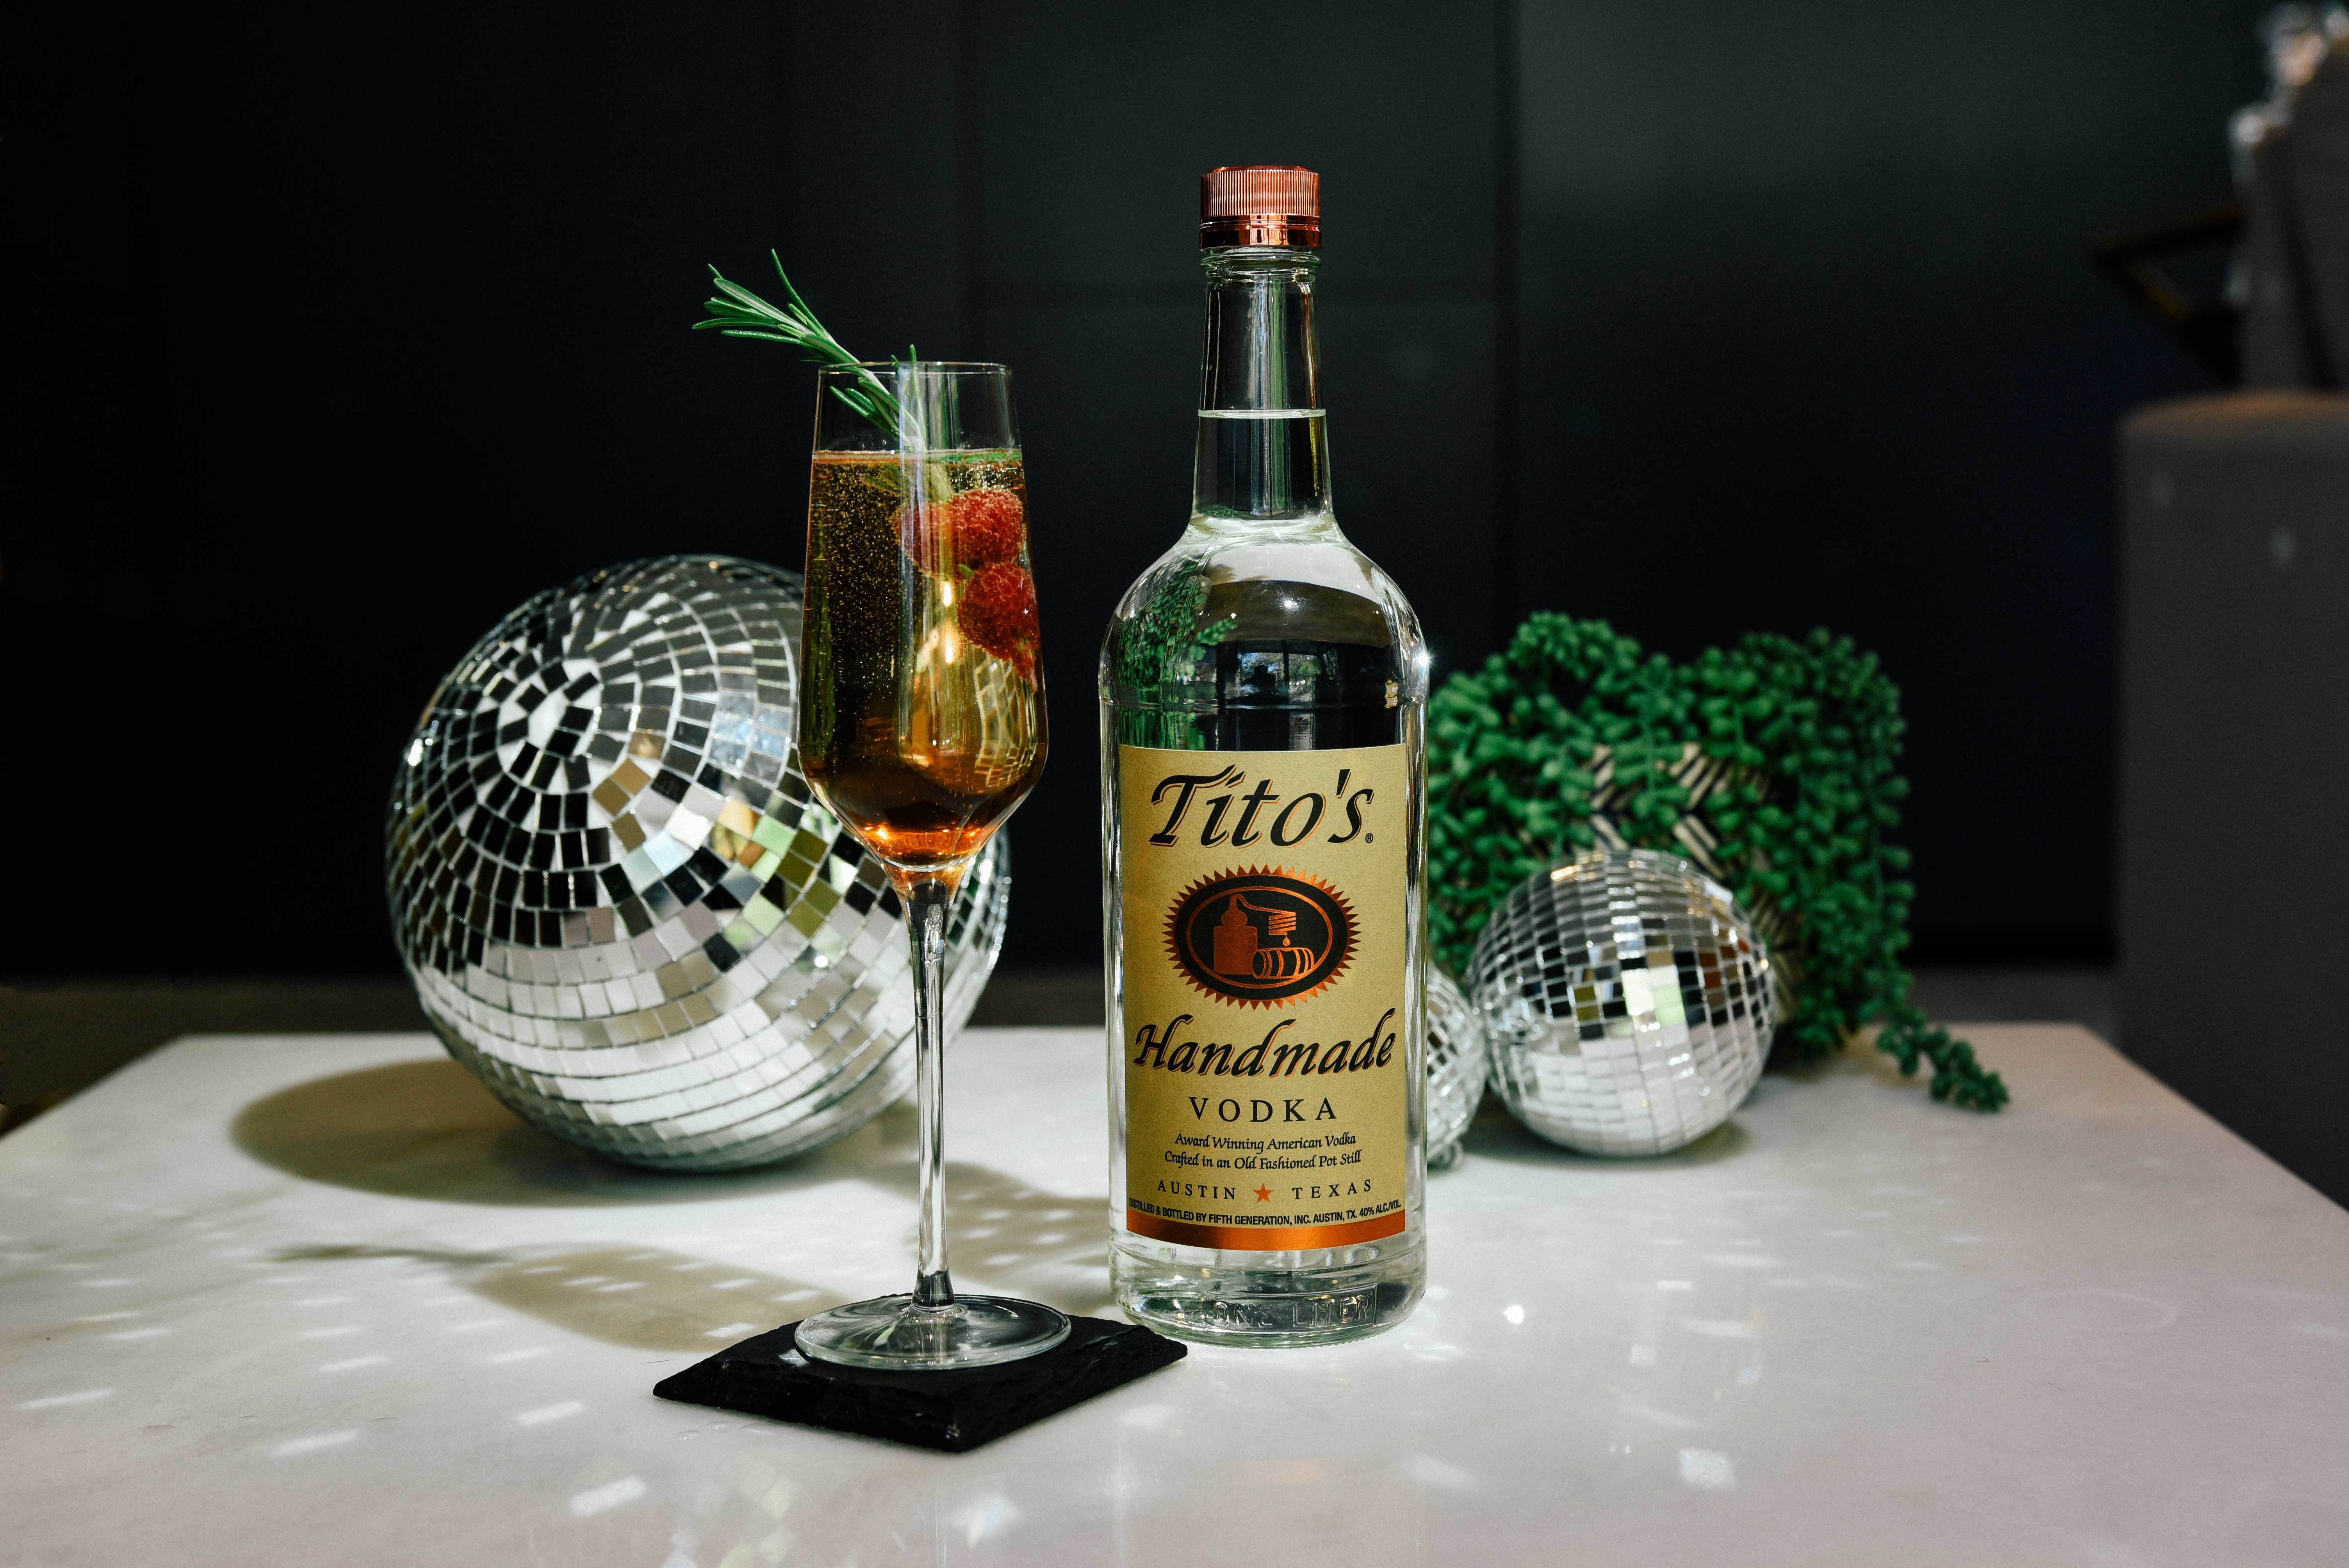 Tito's Berry Dazzler next to a Tito's Vodka bottle with disco balls in the background